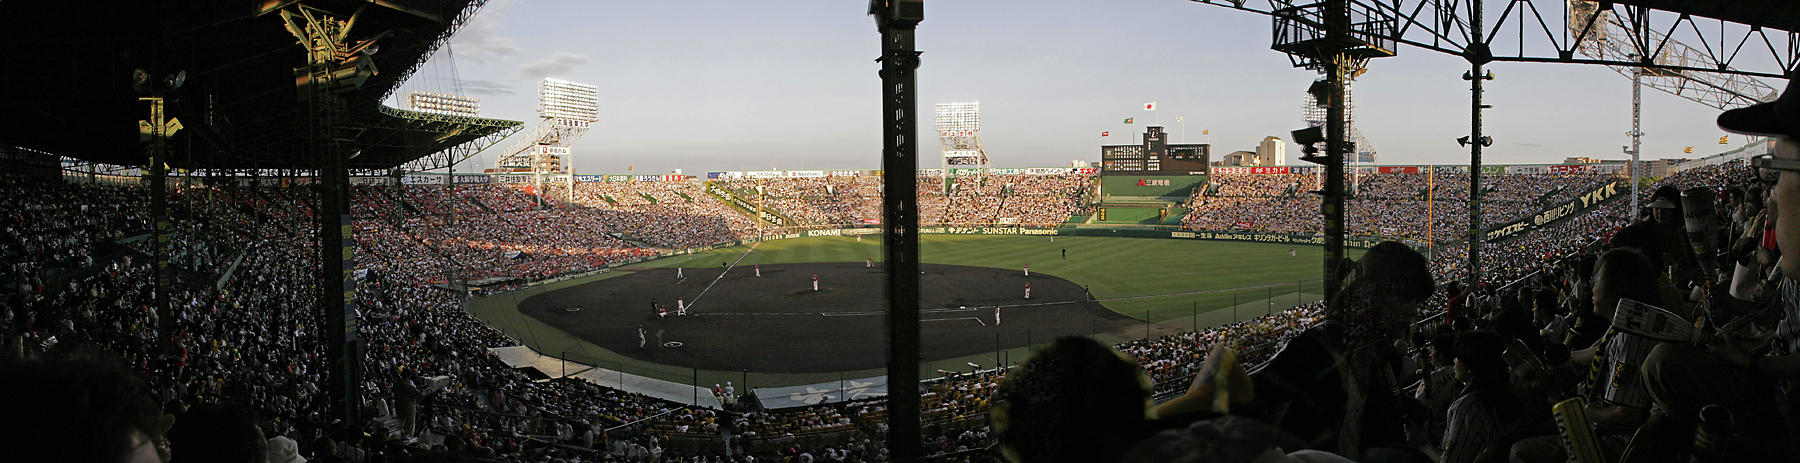 The stadium holds about 50,000.  The stadium was full for a weeknight game in the middle of the season for a team that was in the middle of the standings.  (a 4-image panorama)